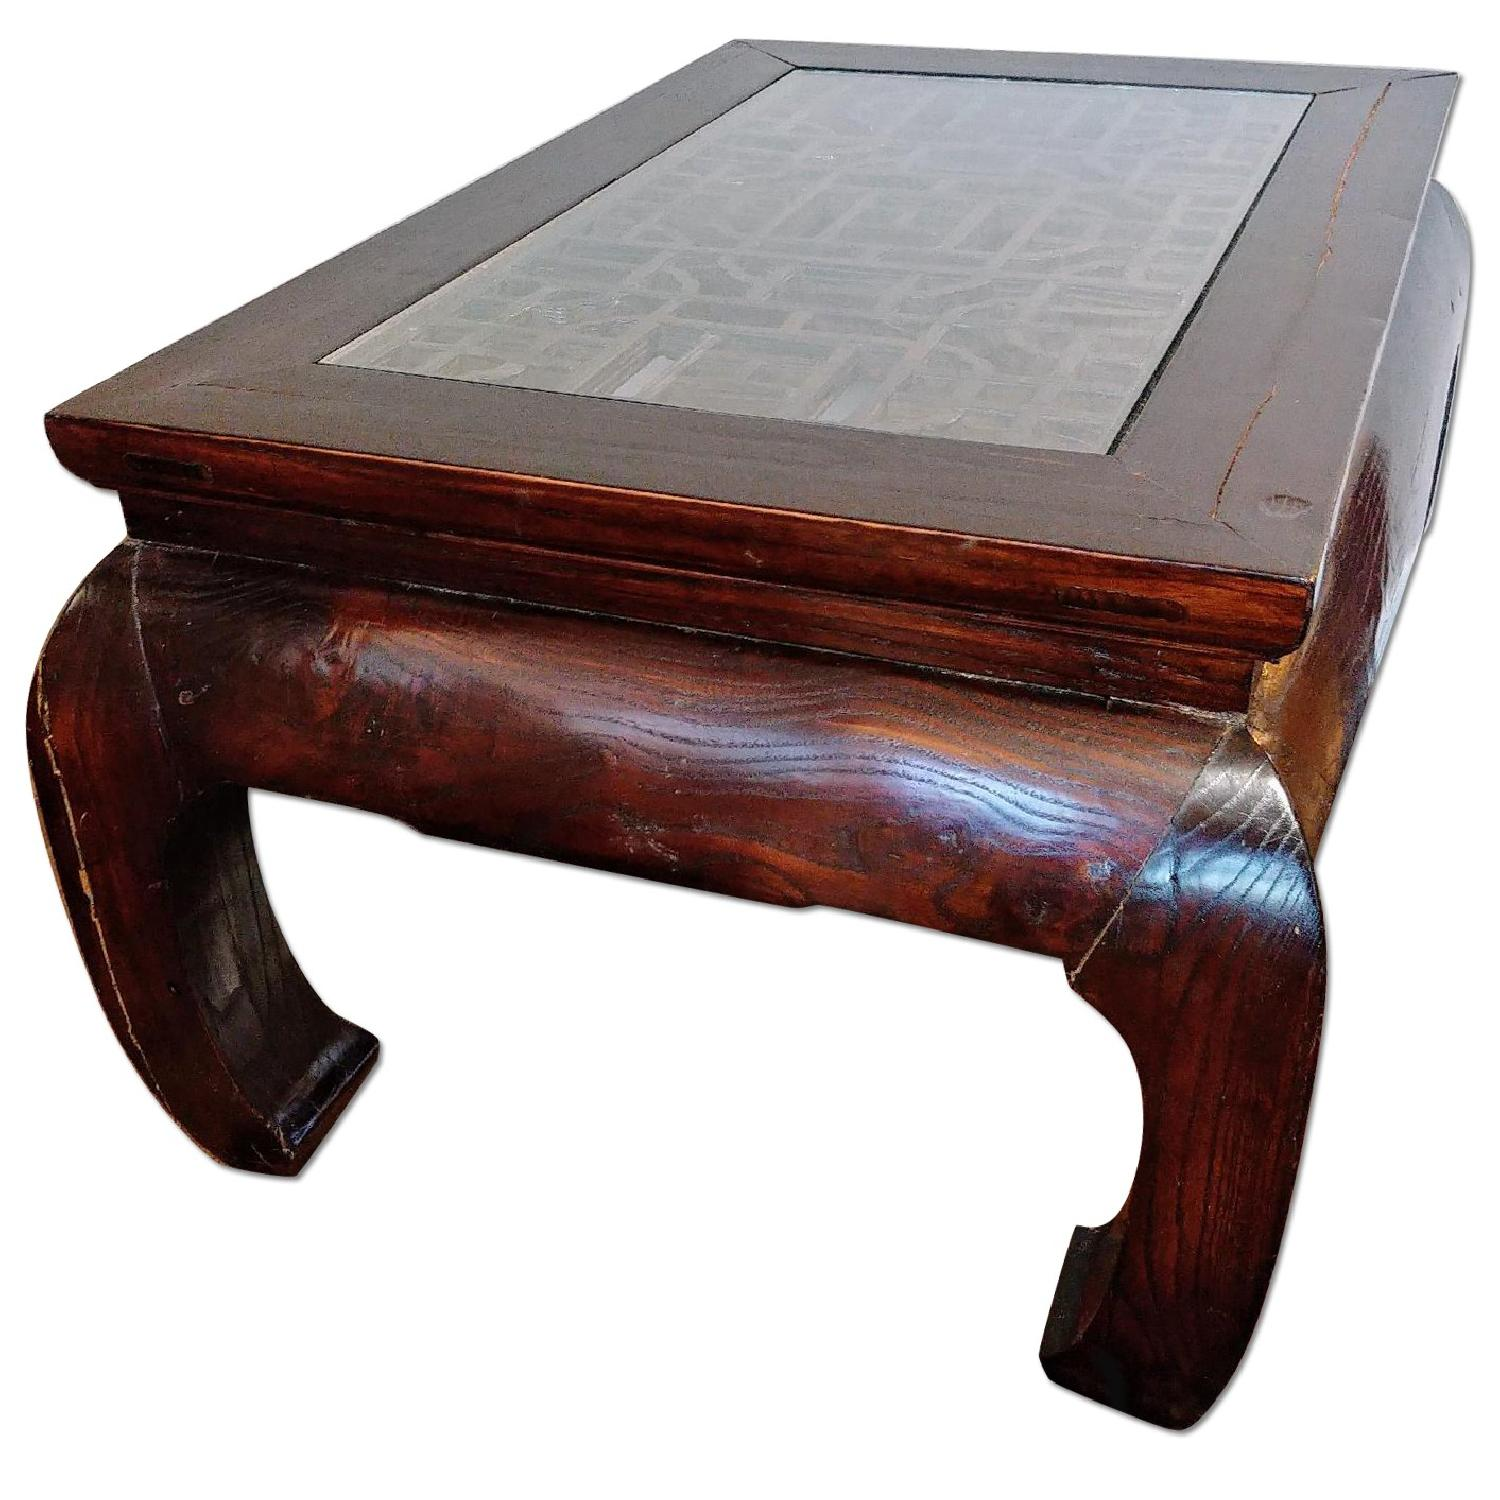 Oriental Furniture Solid Rosewood Coffee Table w/ Glass Top